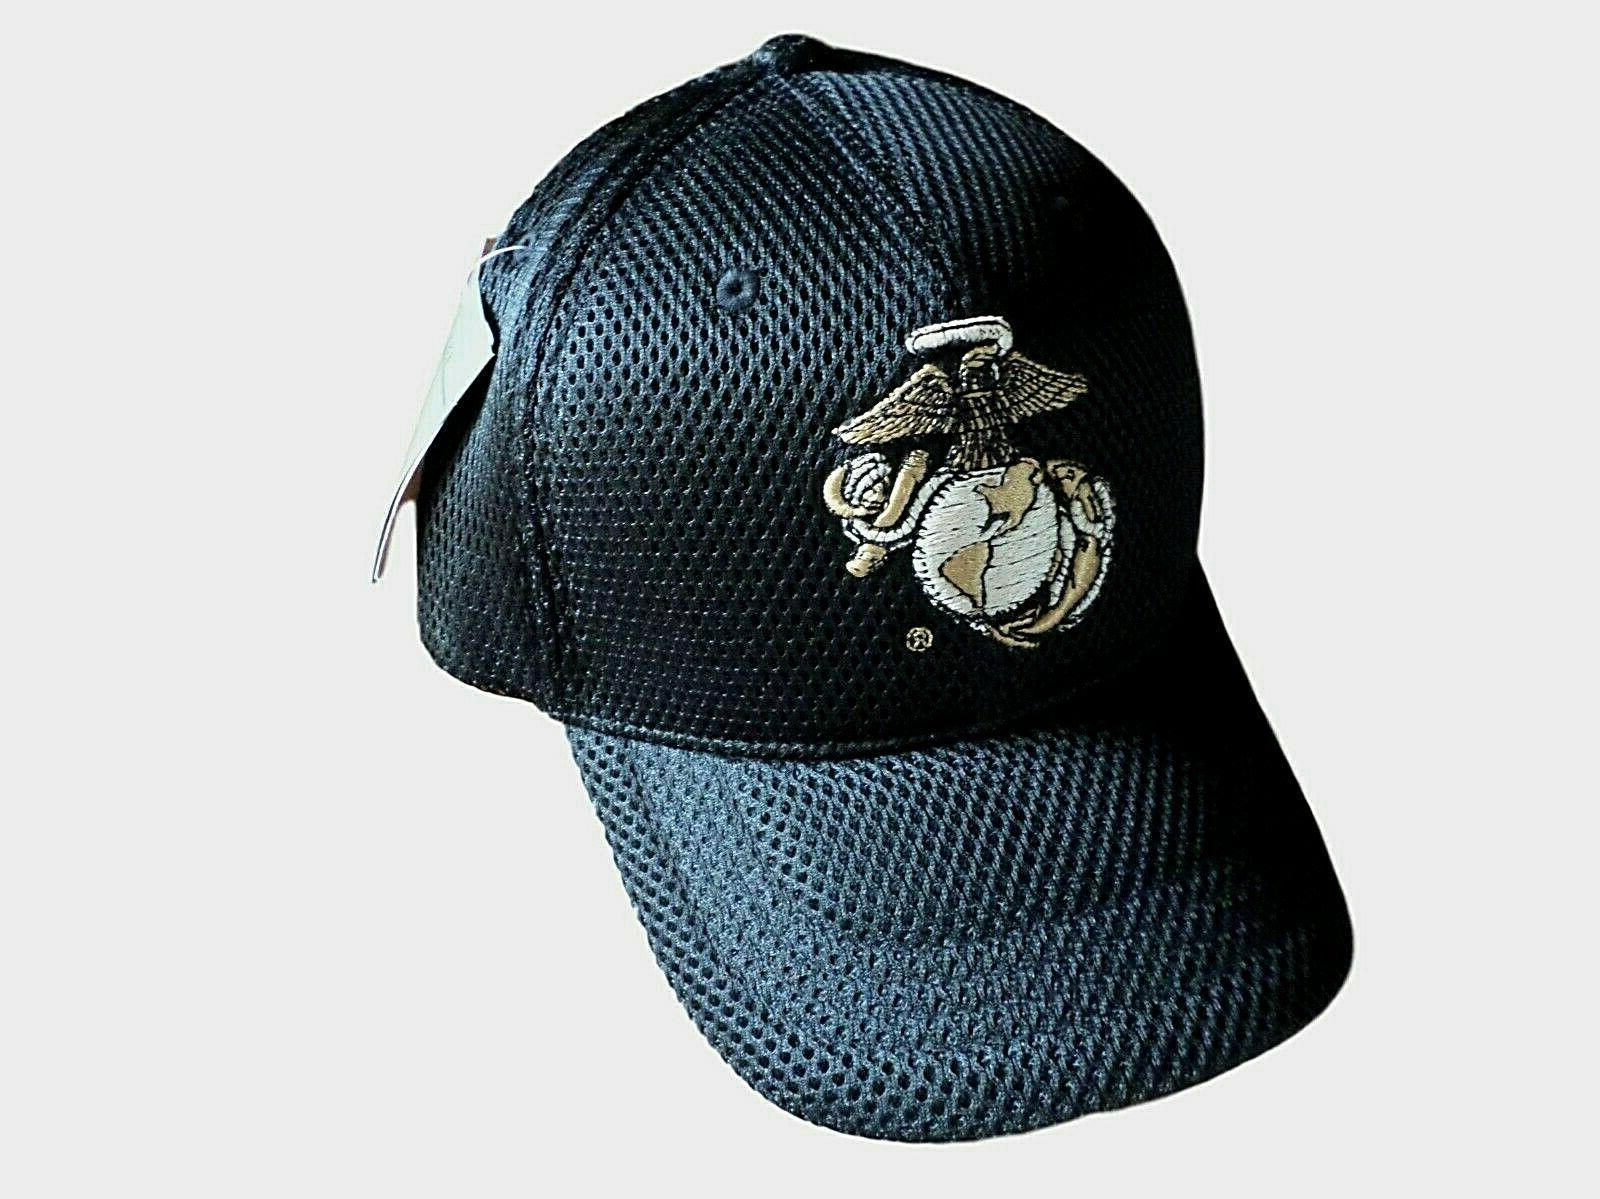 New U.S Military Marine Corps Hat Air Mesh 3-D Embroidered U